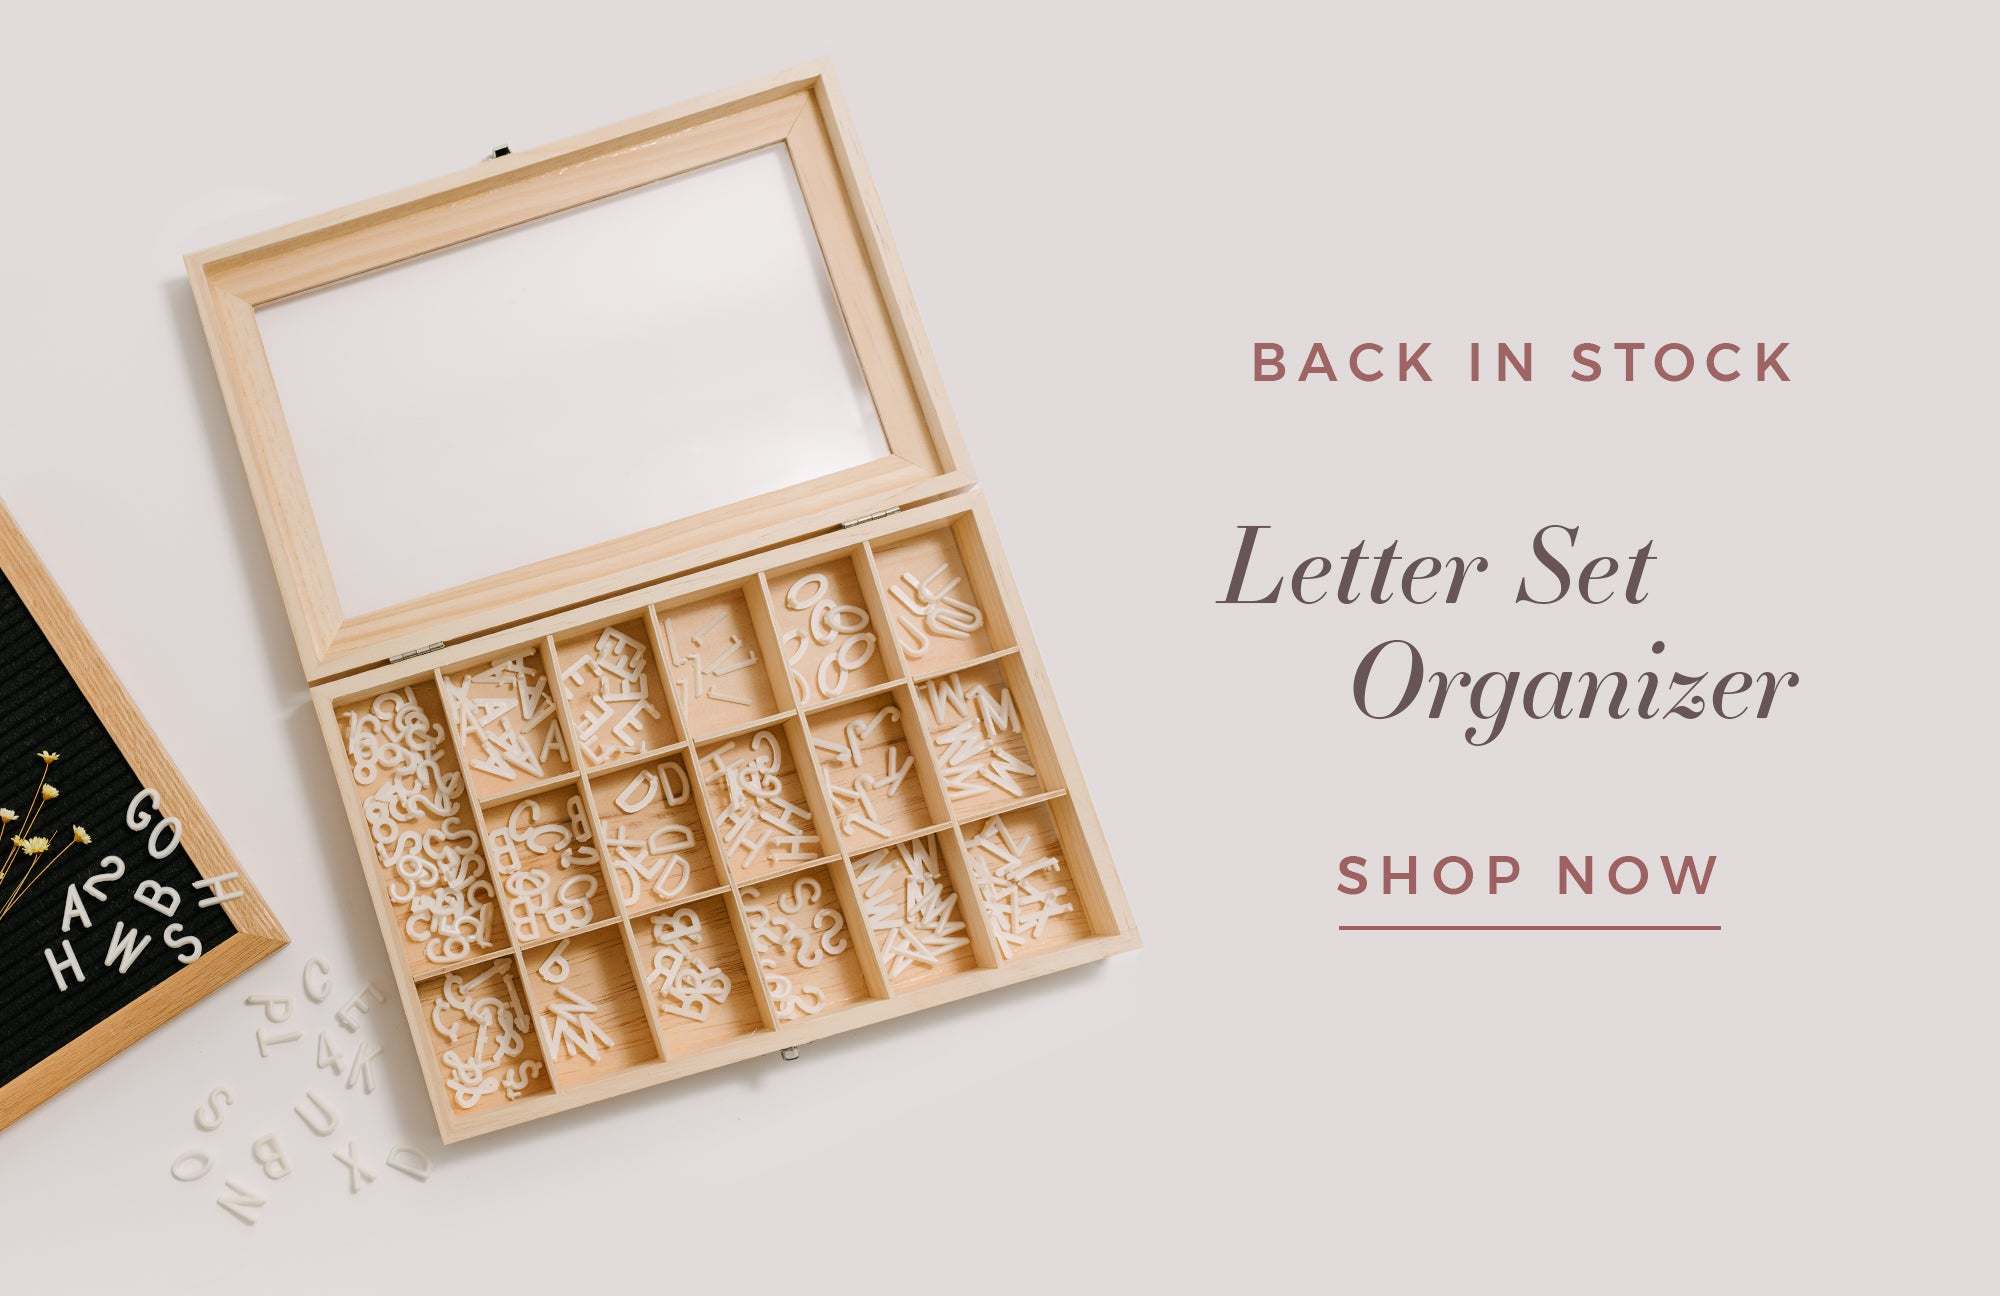 Letter Set Organizer by Letterfolk